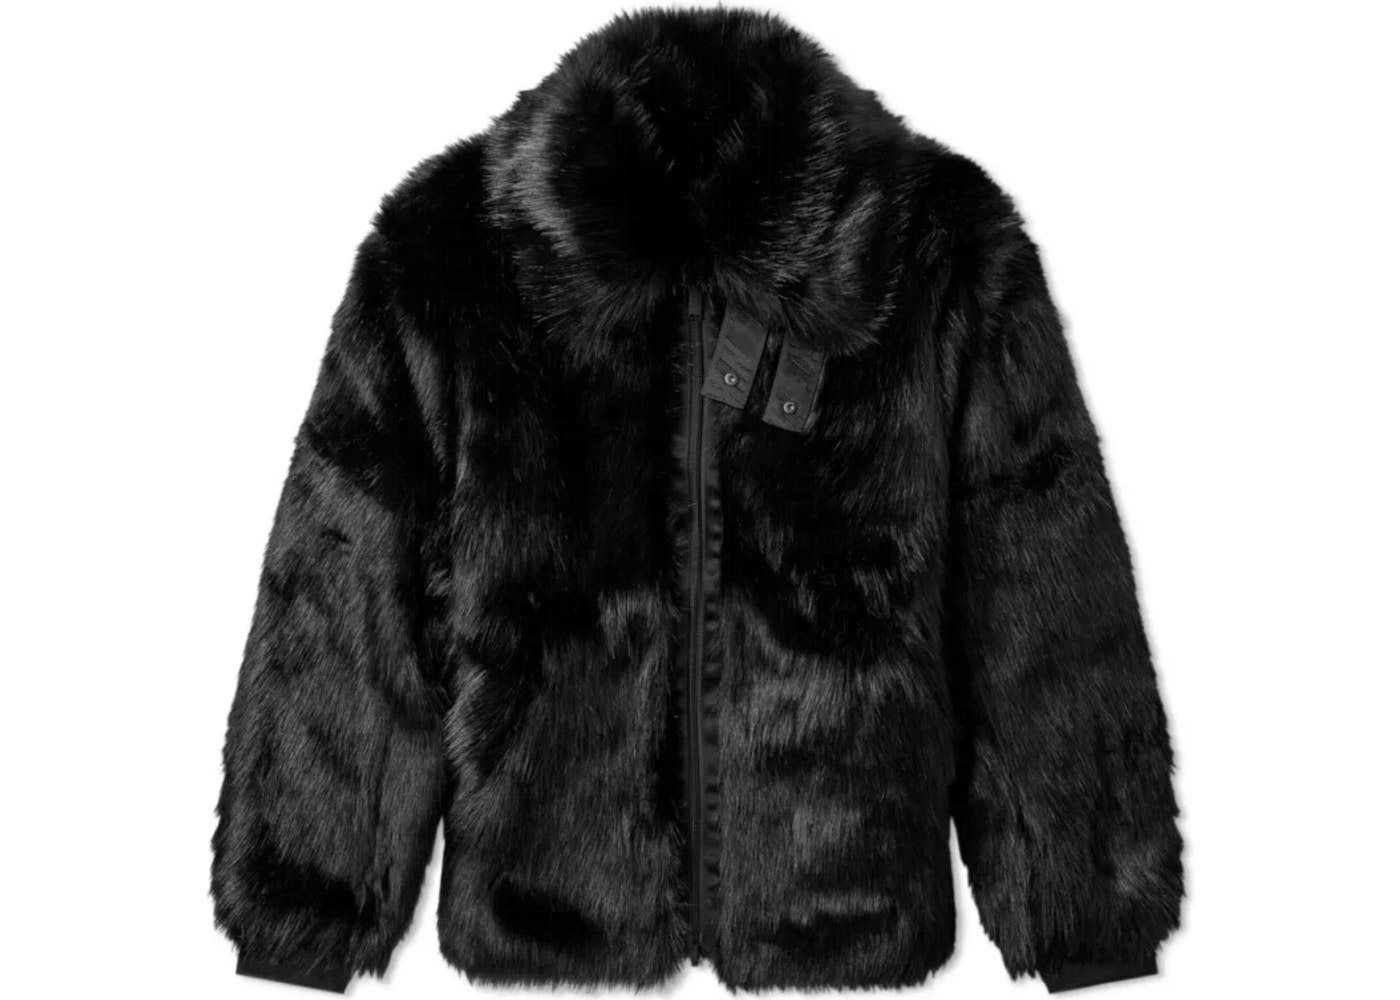 80a4095b151b Nike x Ambush Women's Reversible Faux Fur Coat Black/Sail. x Ambush Women's  Reversible Faux Fur